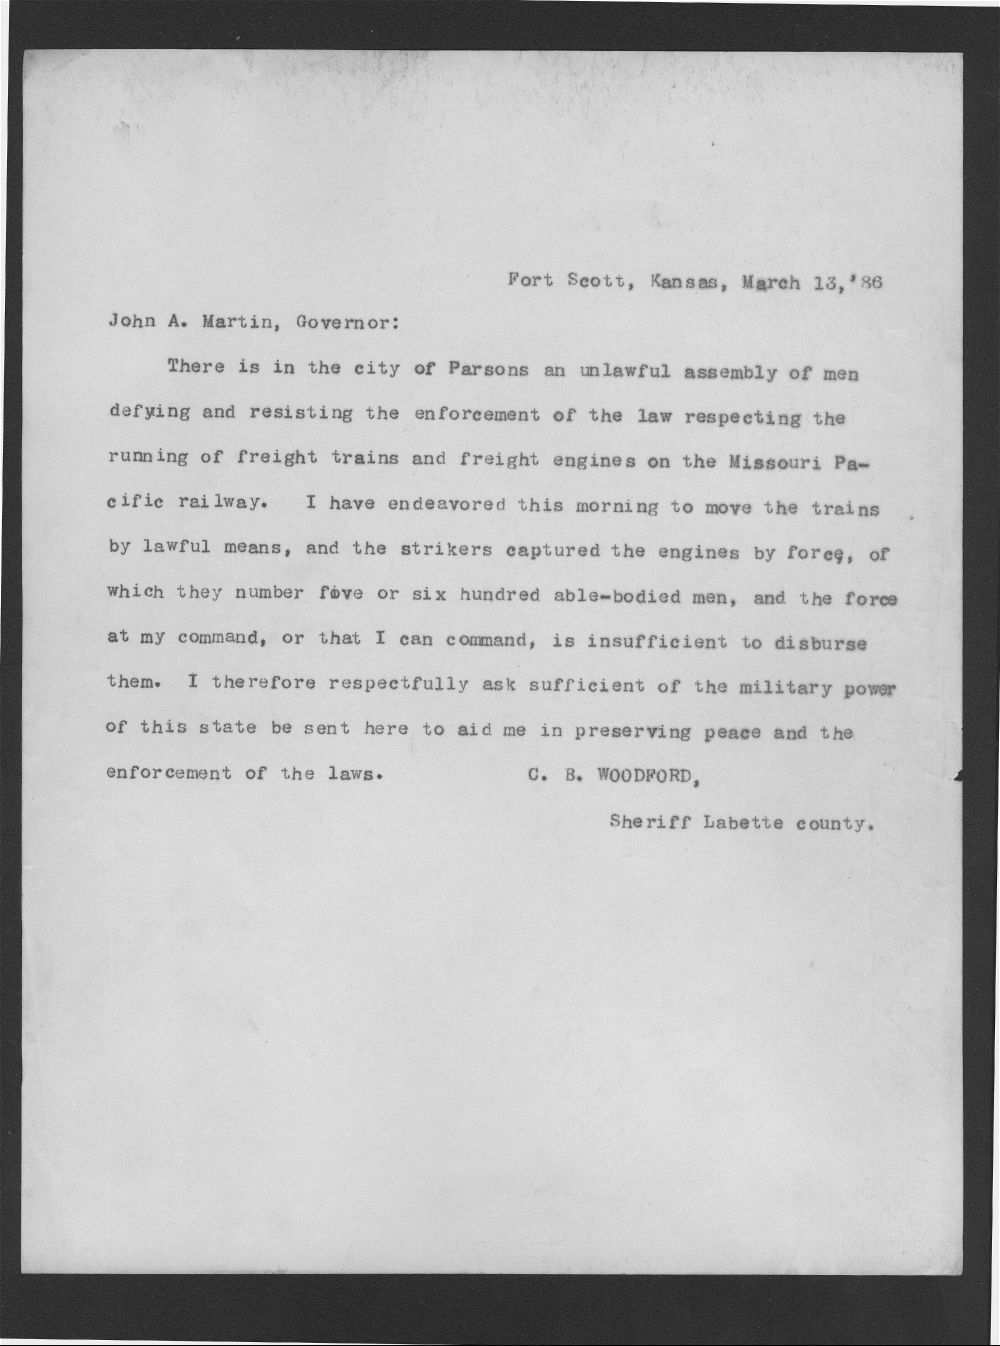 C. B. Woodward to Governor John Martin